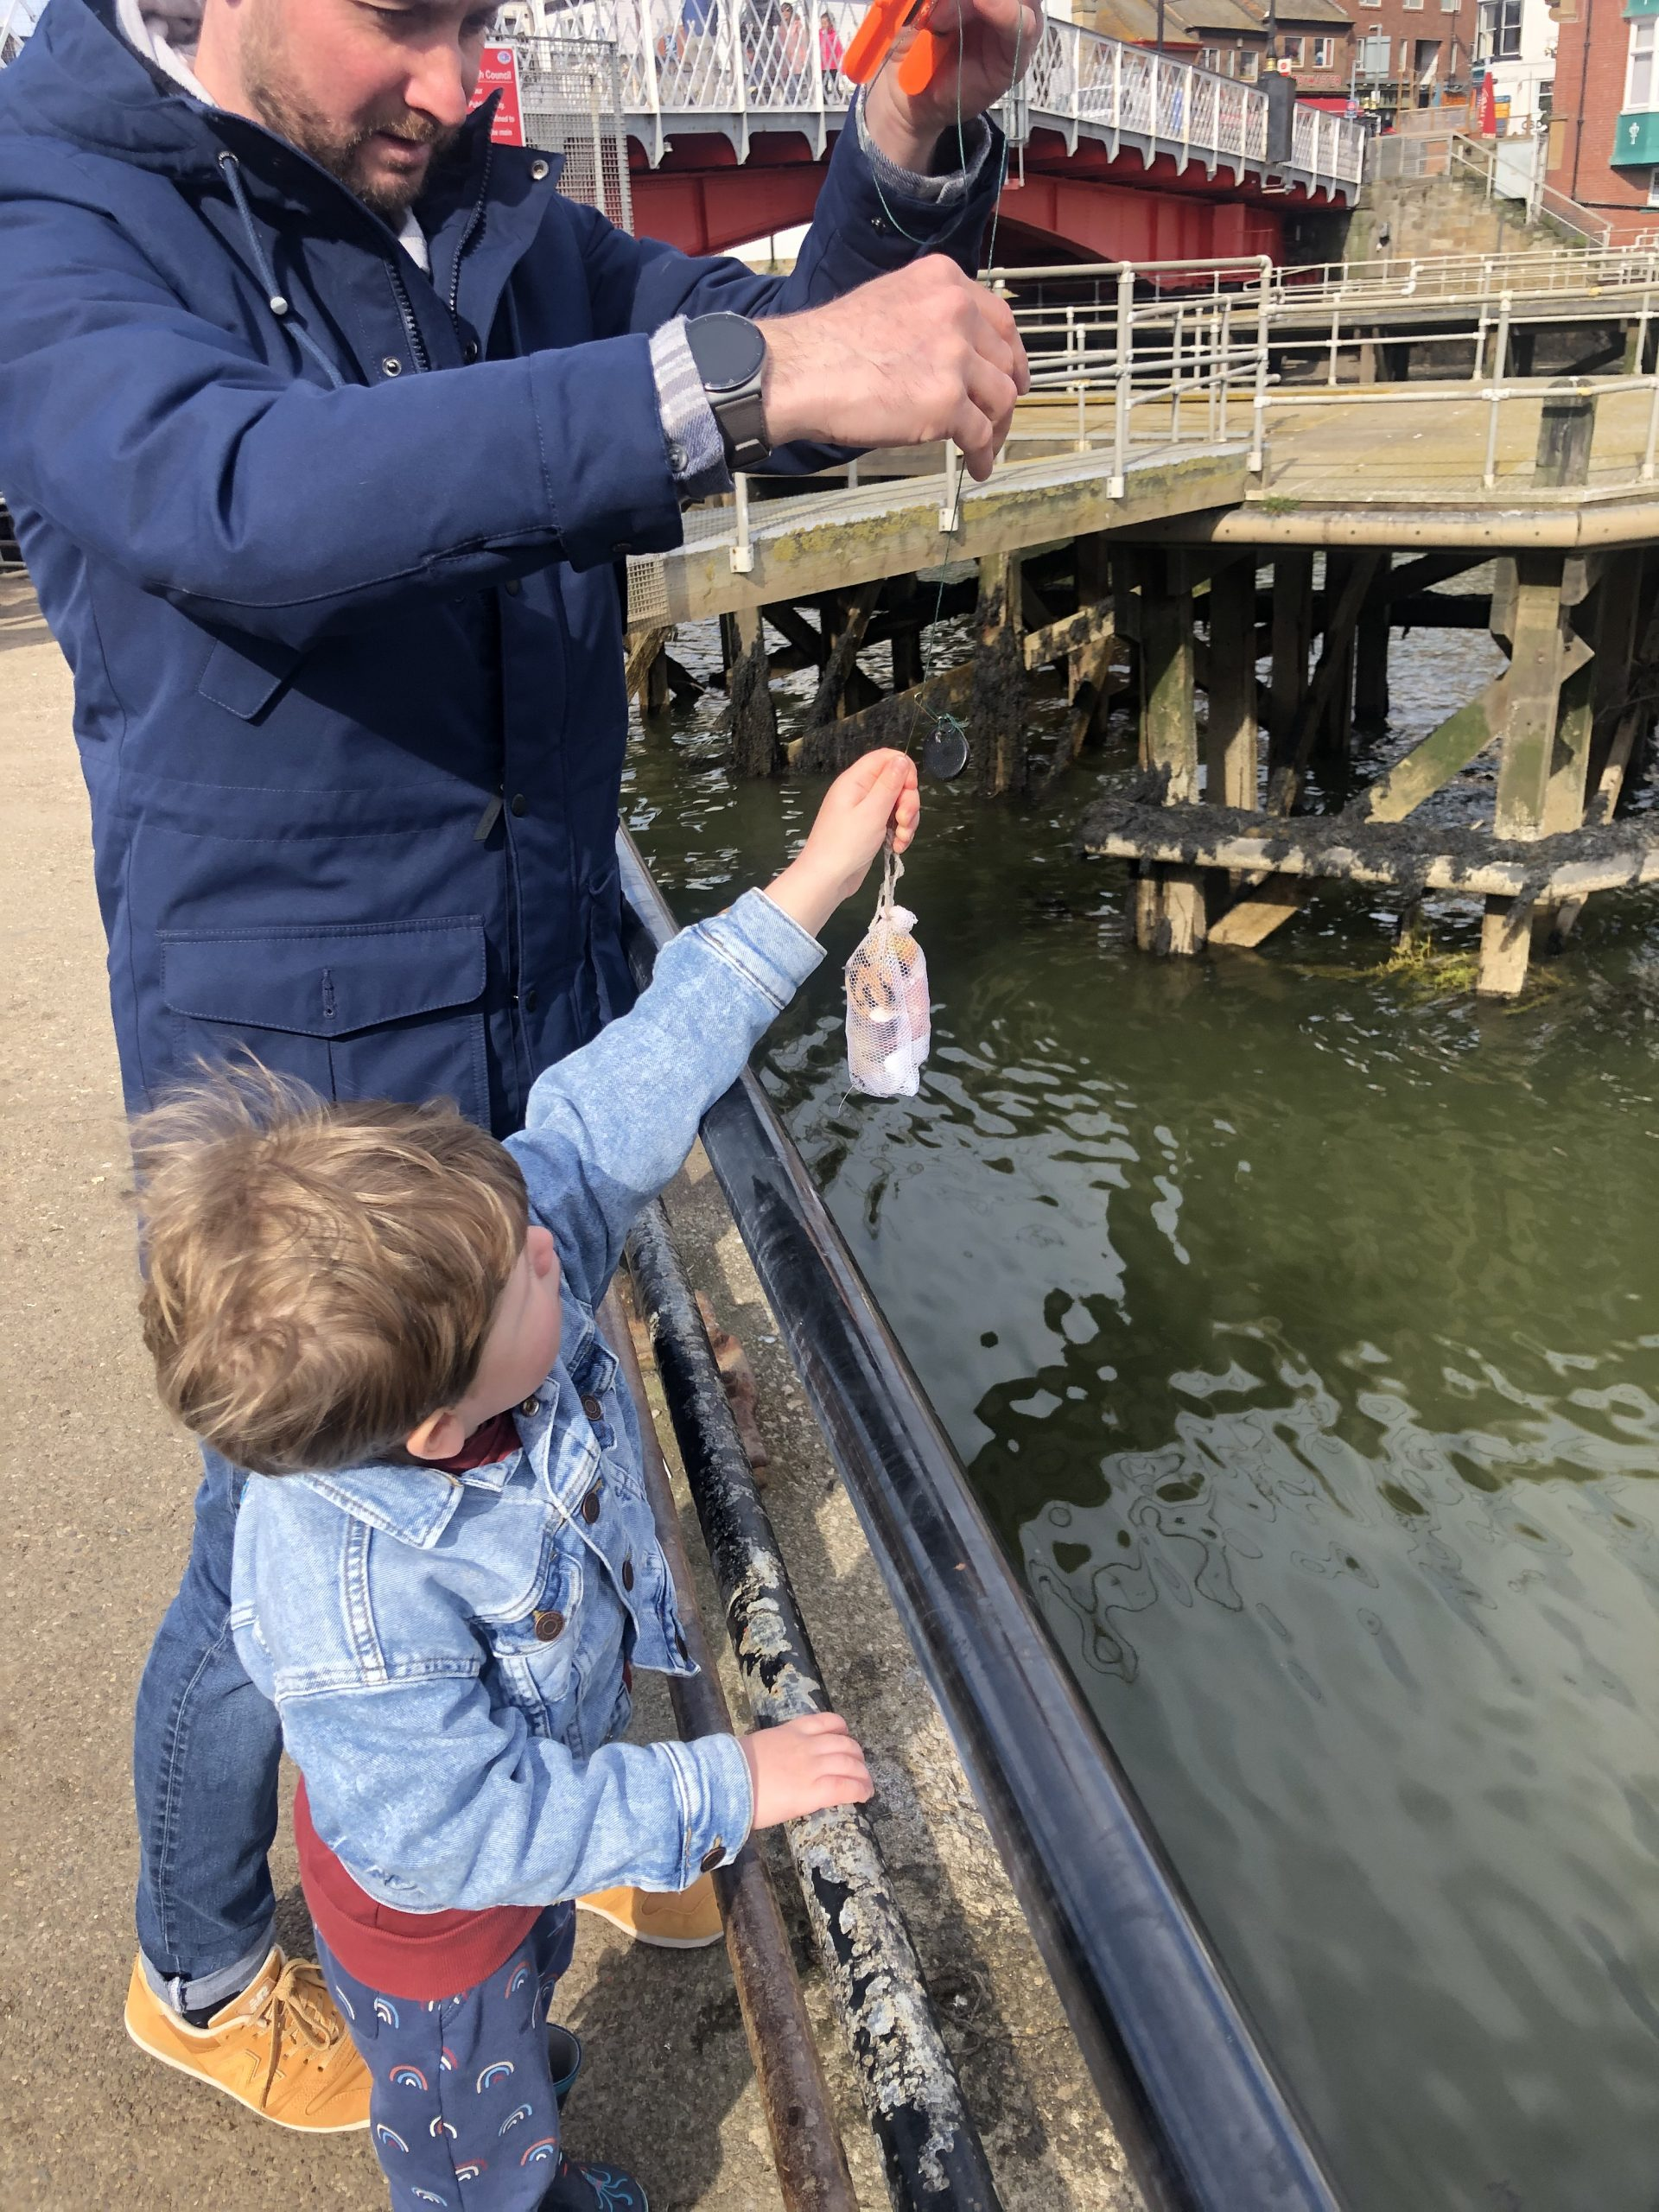 Crabbing in Whitby Harbour with lines